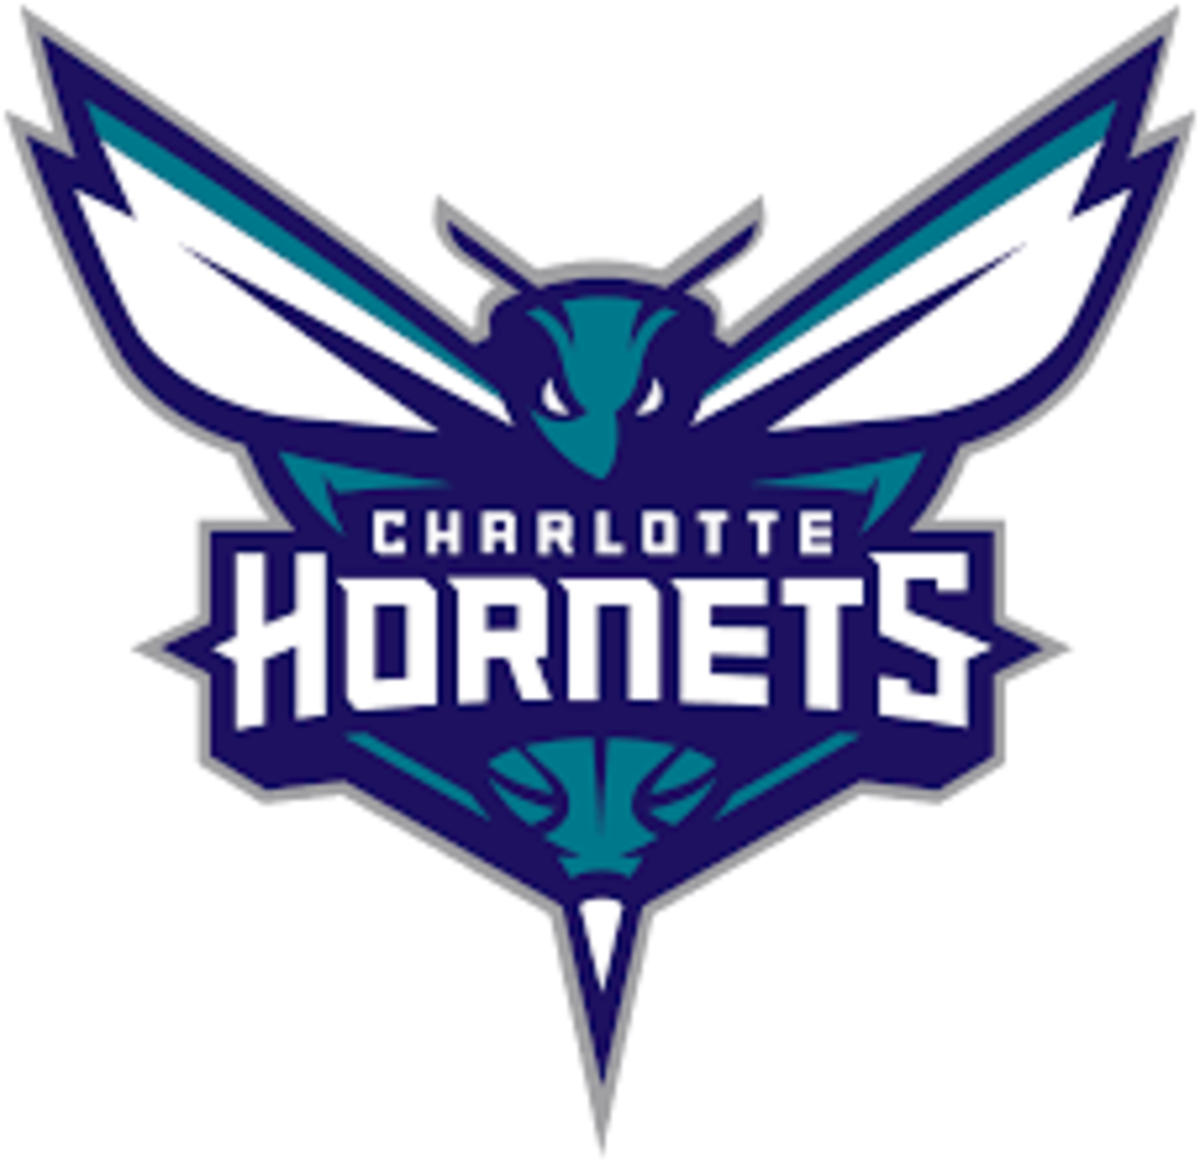 The Hornets finished 33-39 last year with the 10th best record in the East.